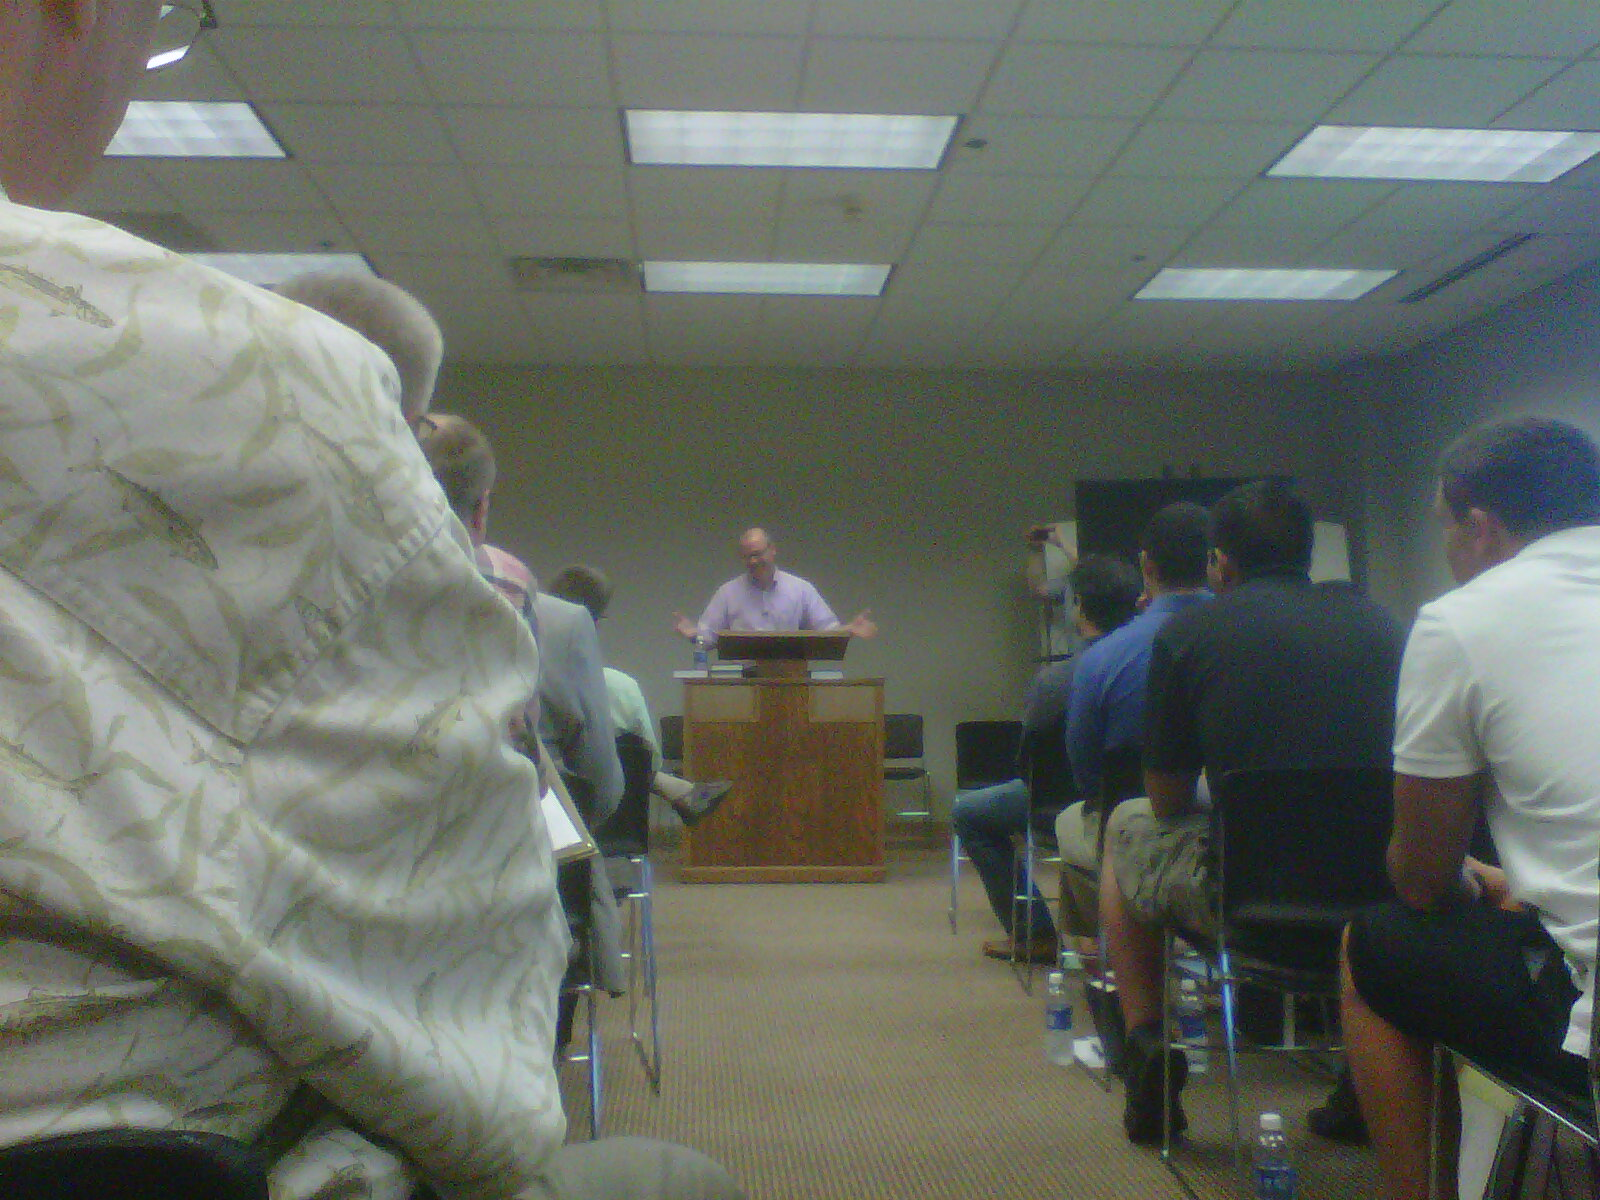 Rev. Andrea Ferrari (Milan, Italy) addressing the URC Missions Conference.